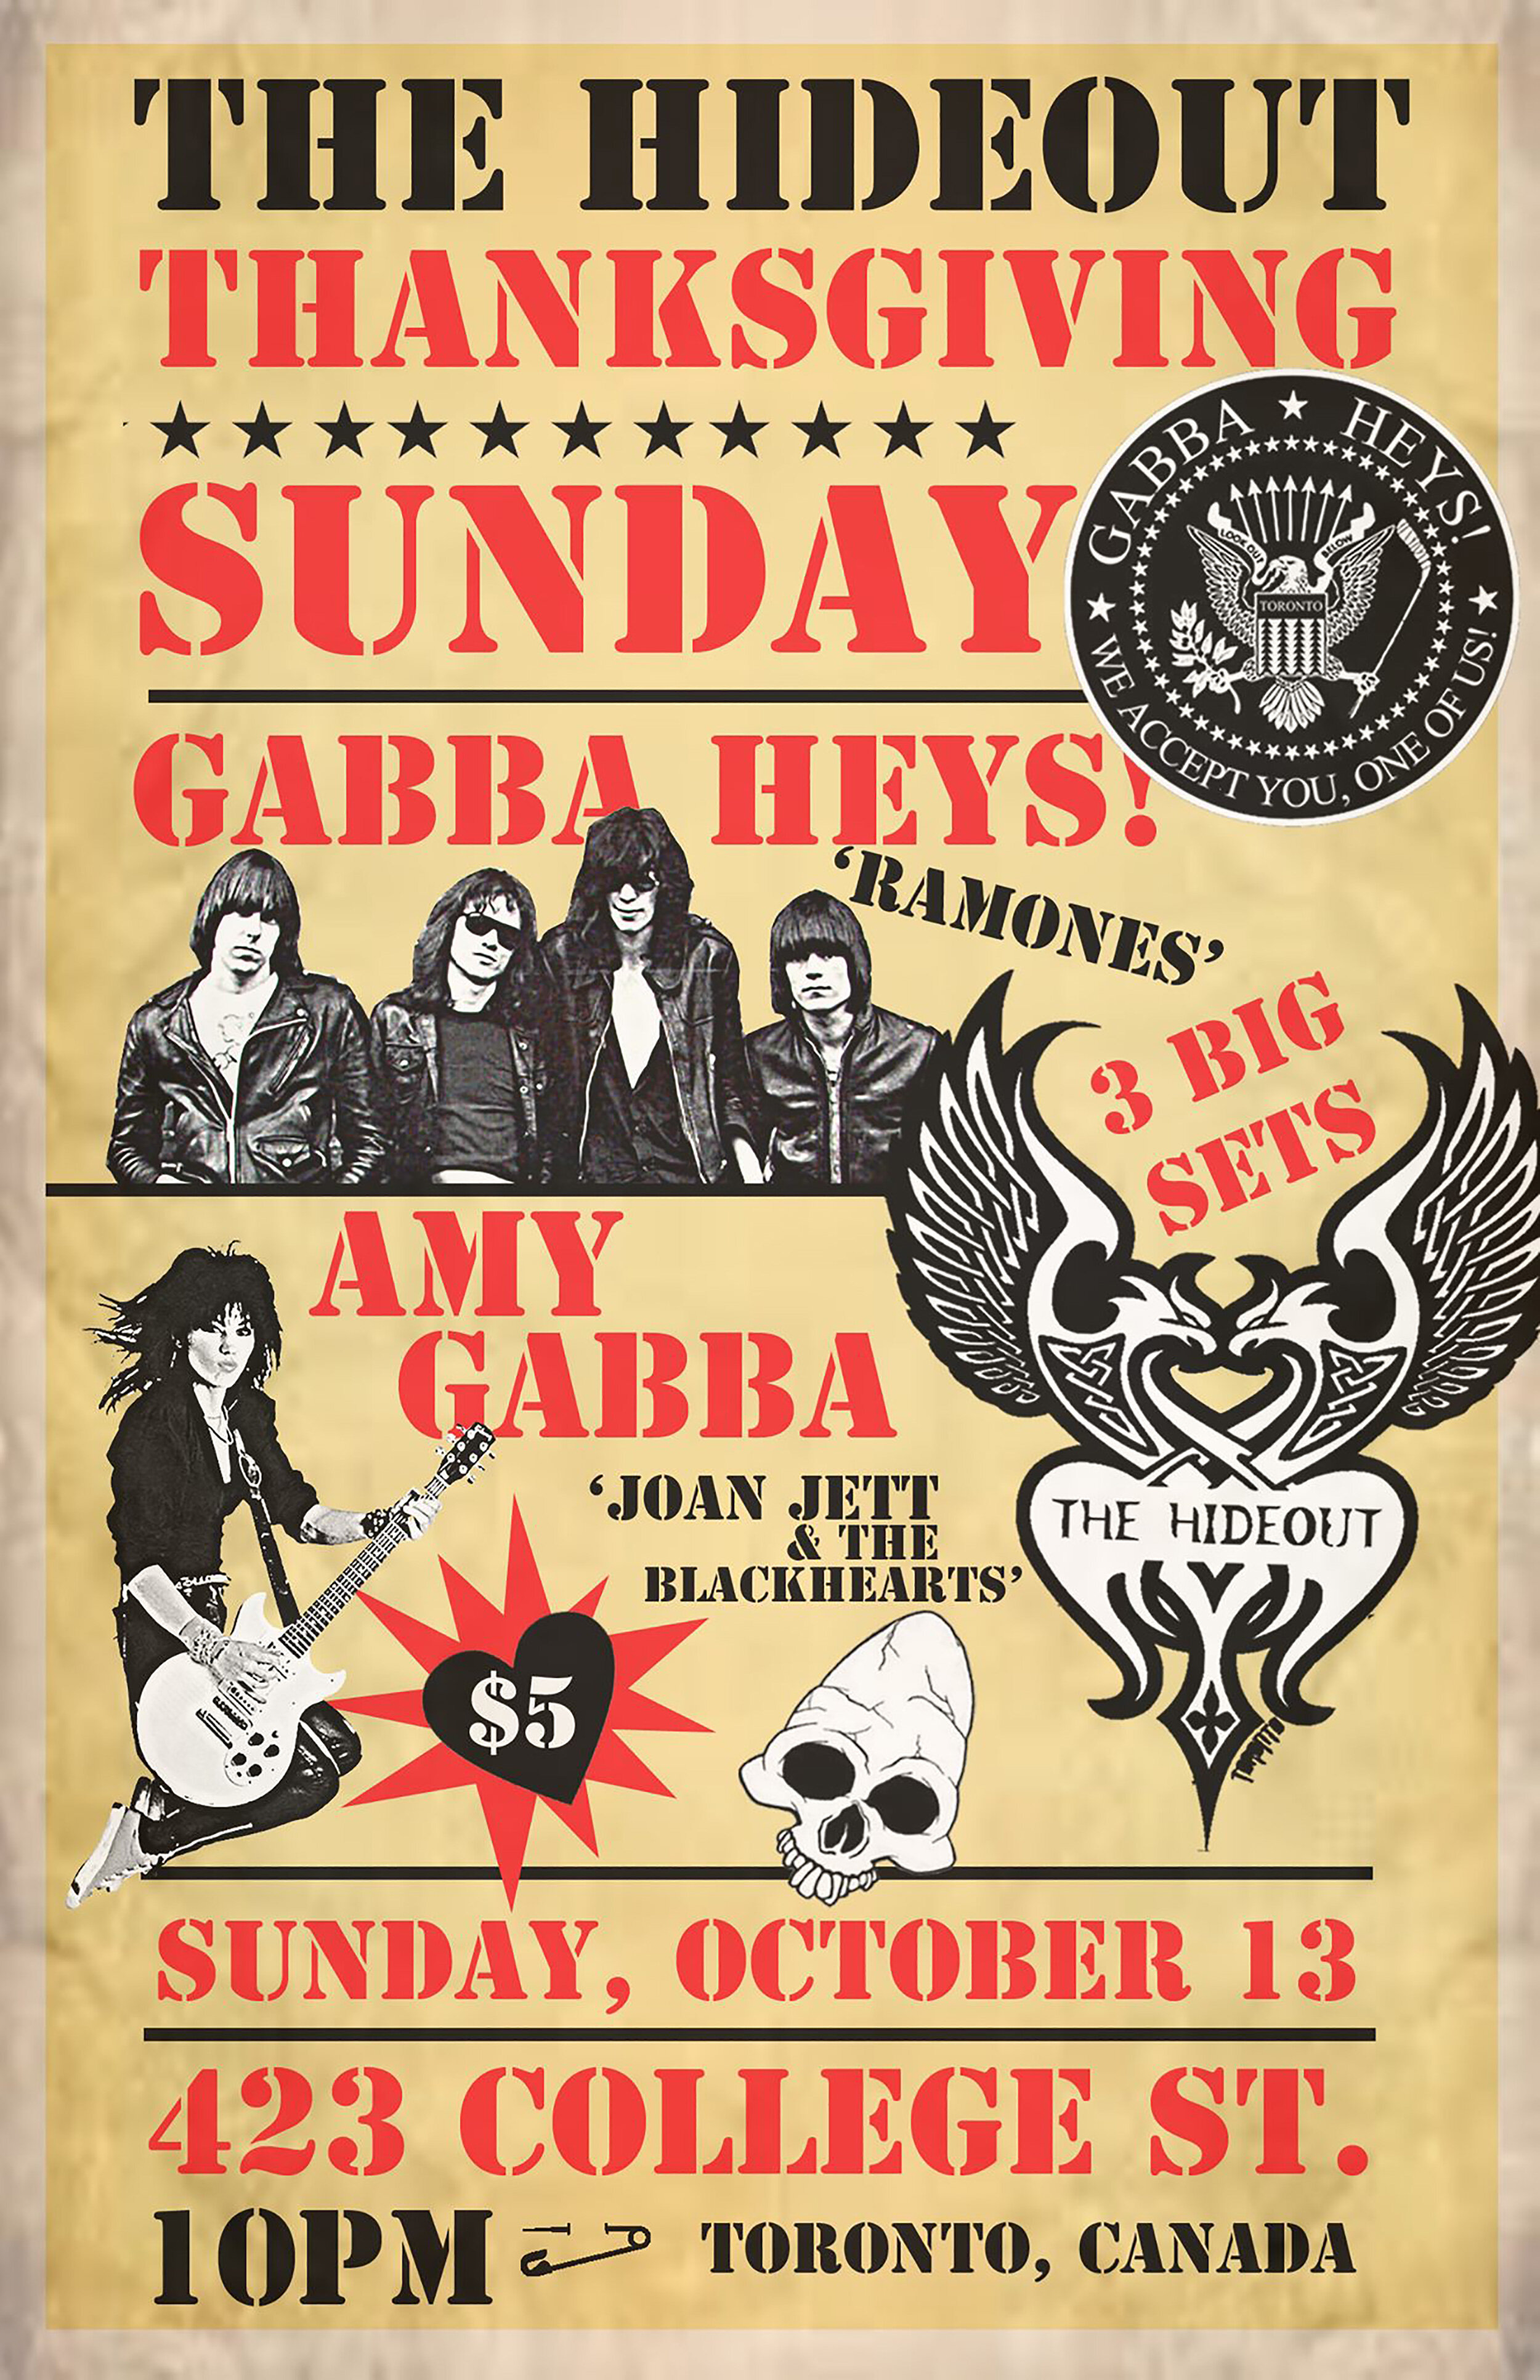 3rd Annual Thanksgiving Bash @ The Hideout Toronto !  GABBA HEYS ! do Ramones +  Amy Gabba ! does Joan Jett. Plus other classics from Blondie, Forgotten Rebels, The Go Go's, Generation X, Dead Boys + more!  3 BIG SETS! HEY! HO! LET'S GO!  Doors 9PM - Show 10PM   Cleave Anderson  drums  Amy Gabba  vocals  Mikey Hawdon  guitar / vocals  Lucas Stagg  bass / vocals   earstotheground.ca   NOW Magazine   Little Italy College St. BIA